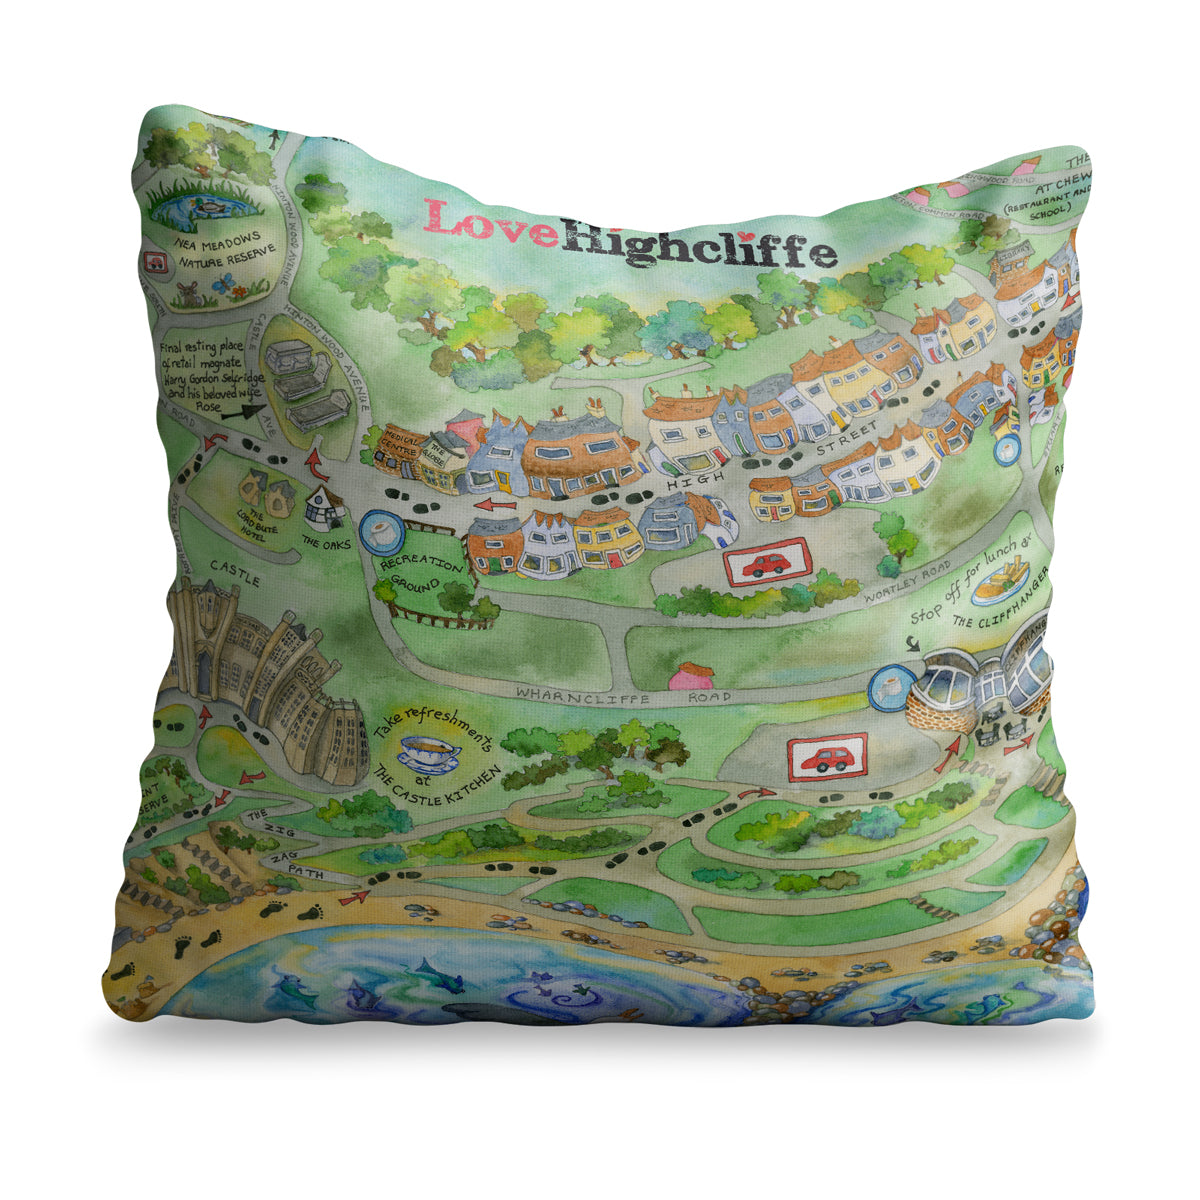 Love Highcliffe Cushion